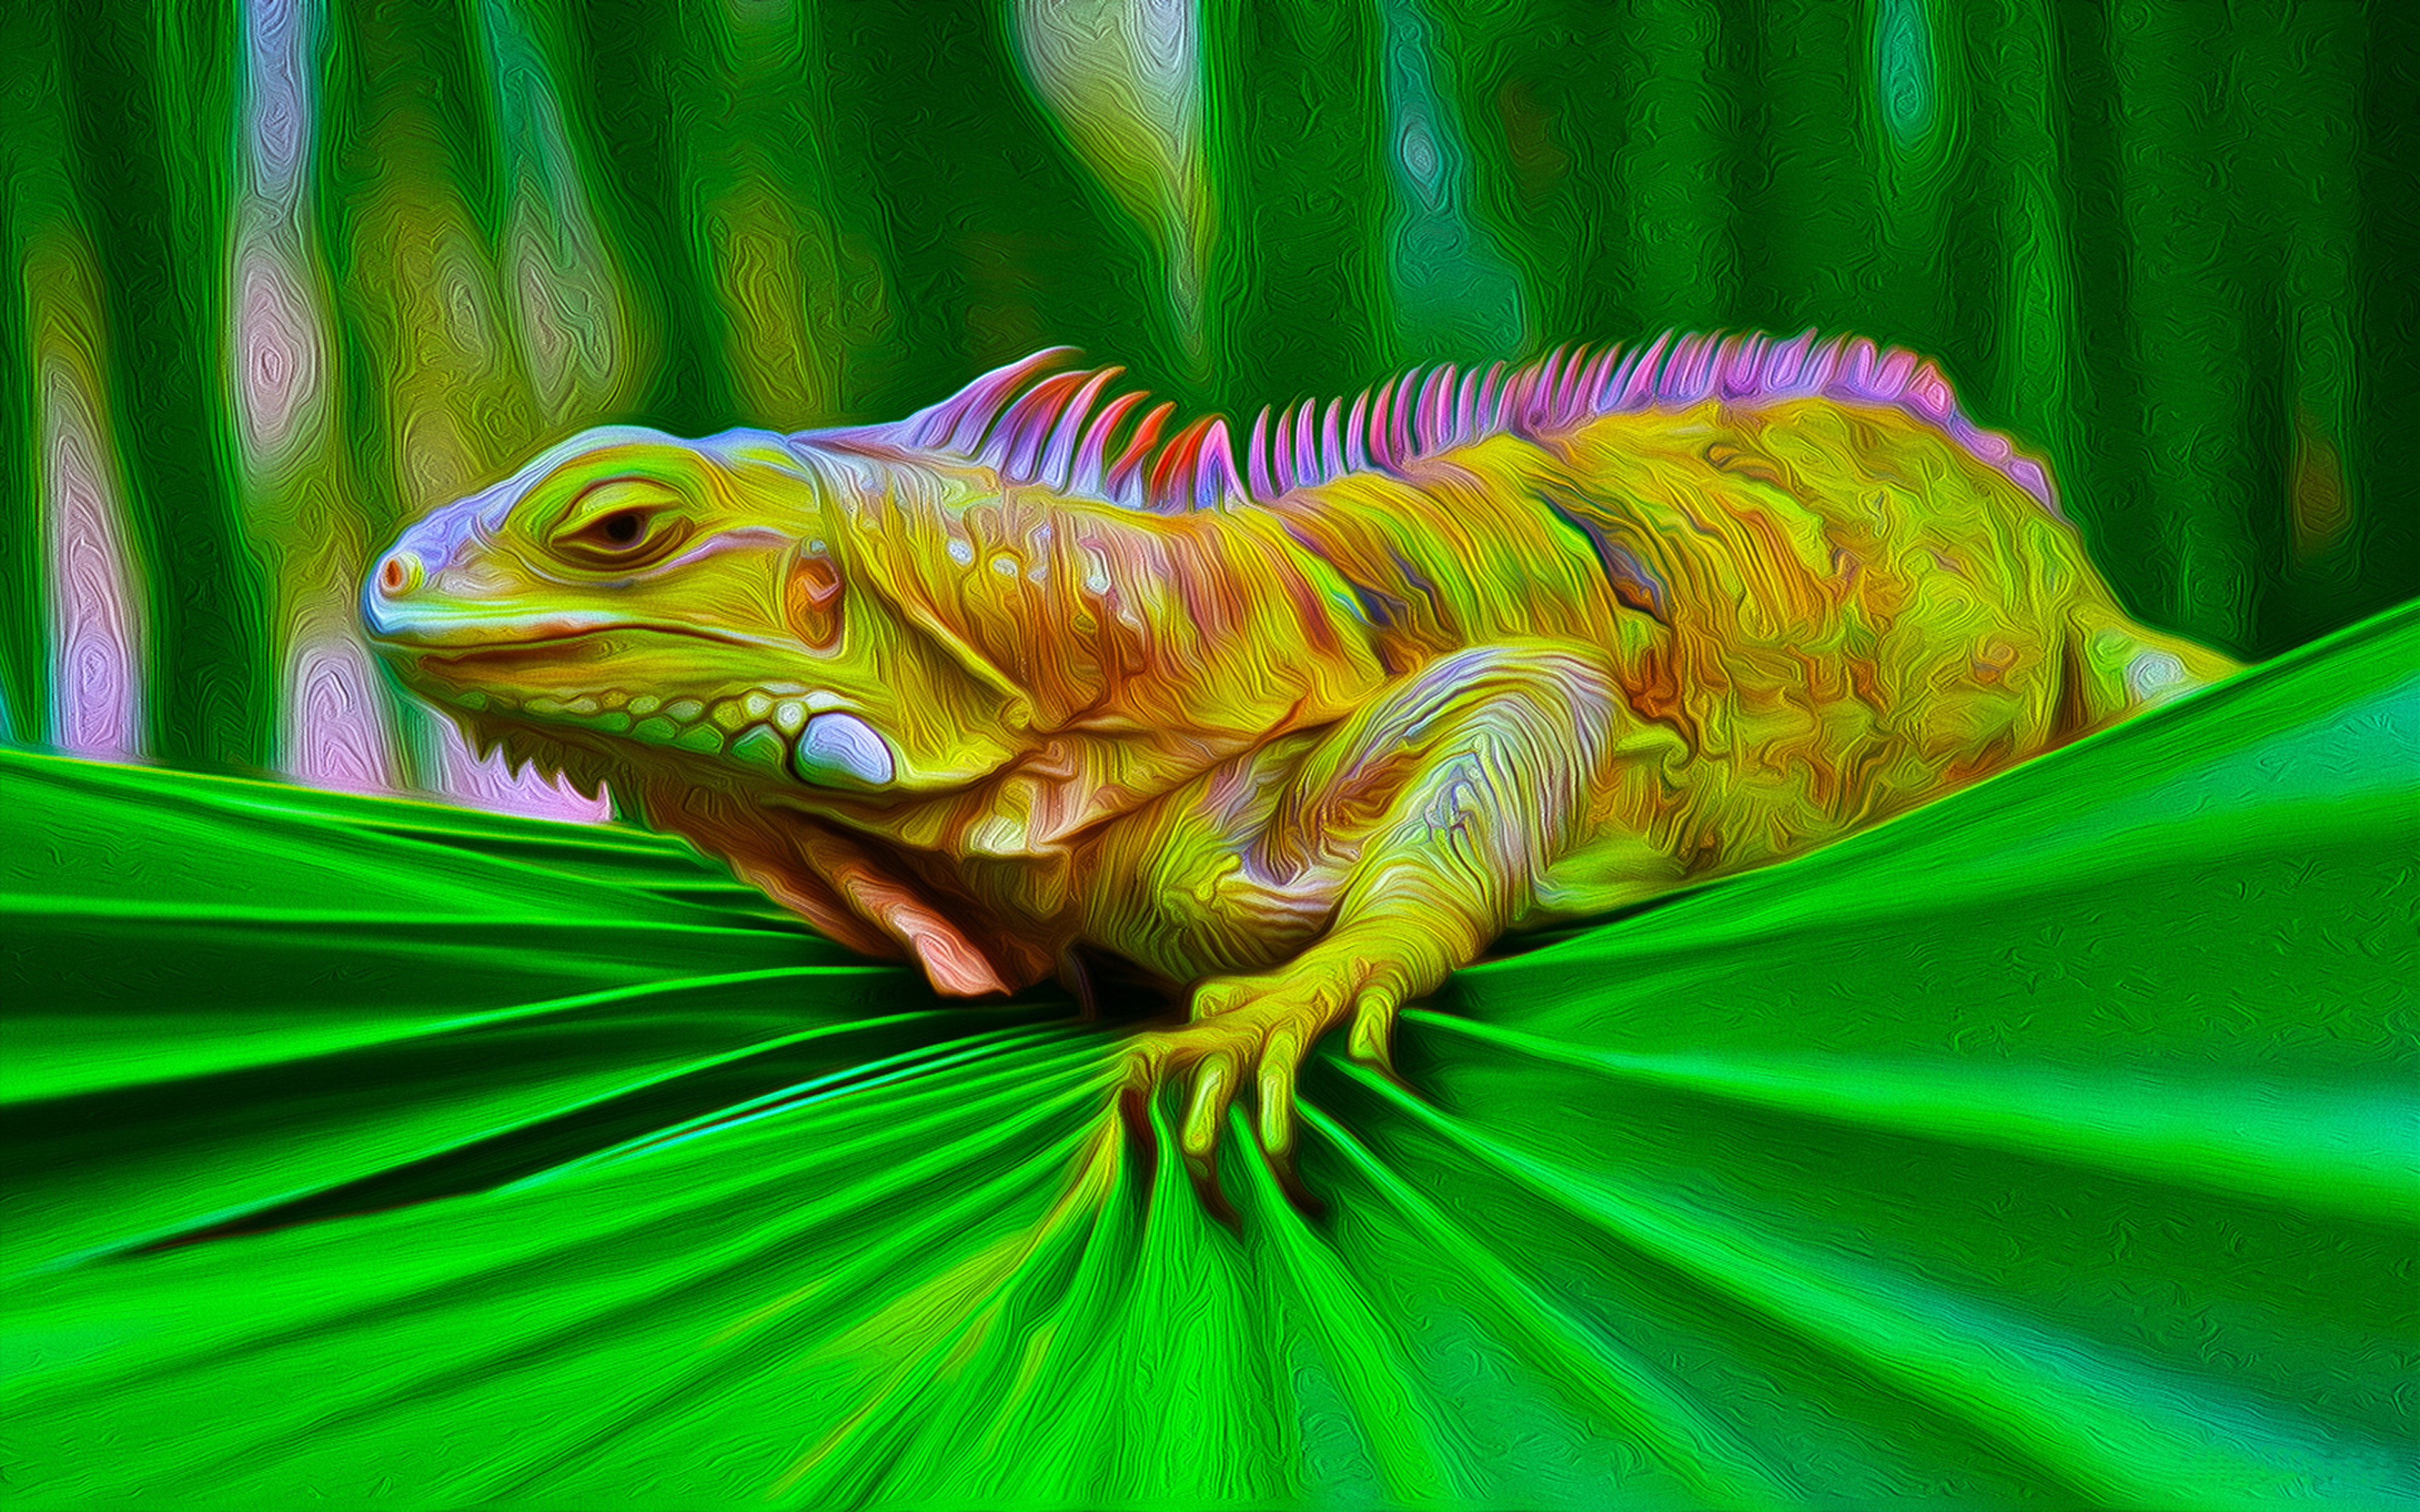 Iguana Colorful Lizard Computer Digital Art For Your